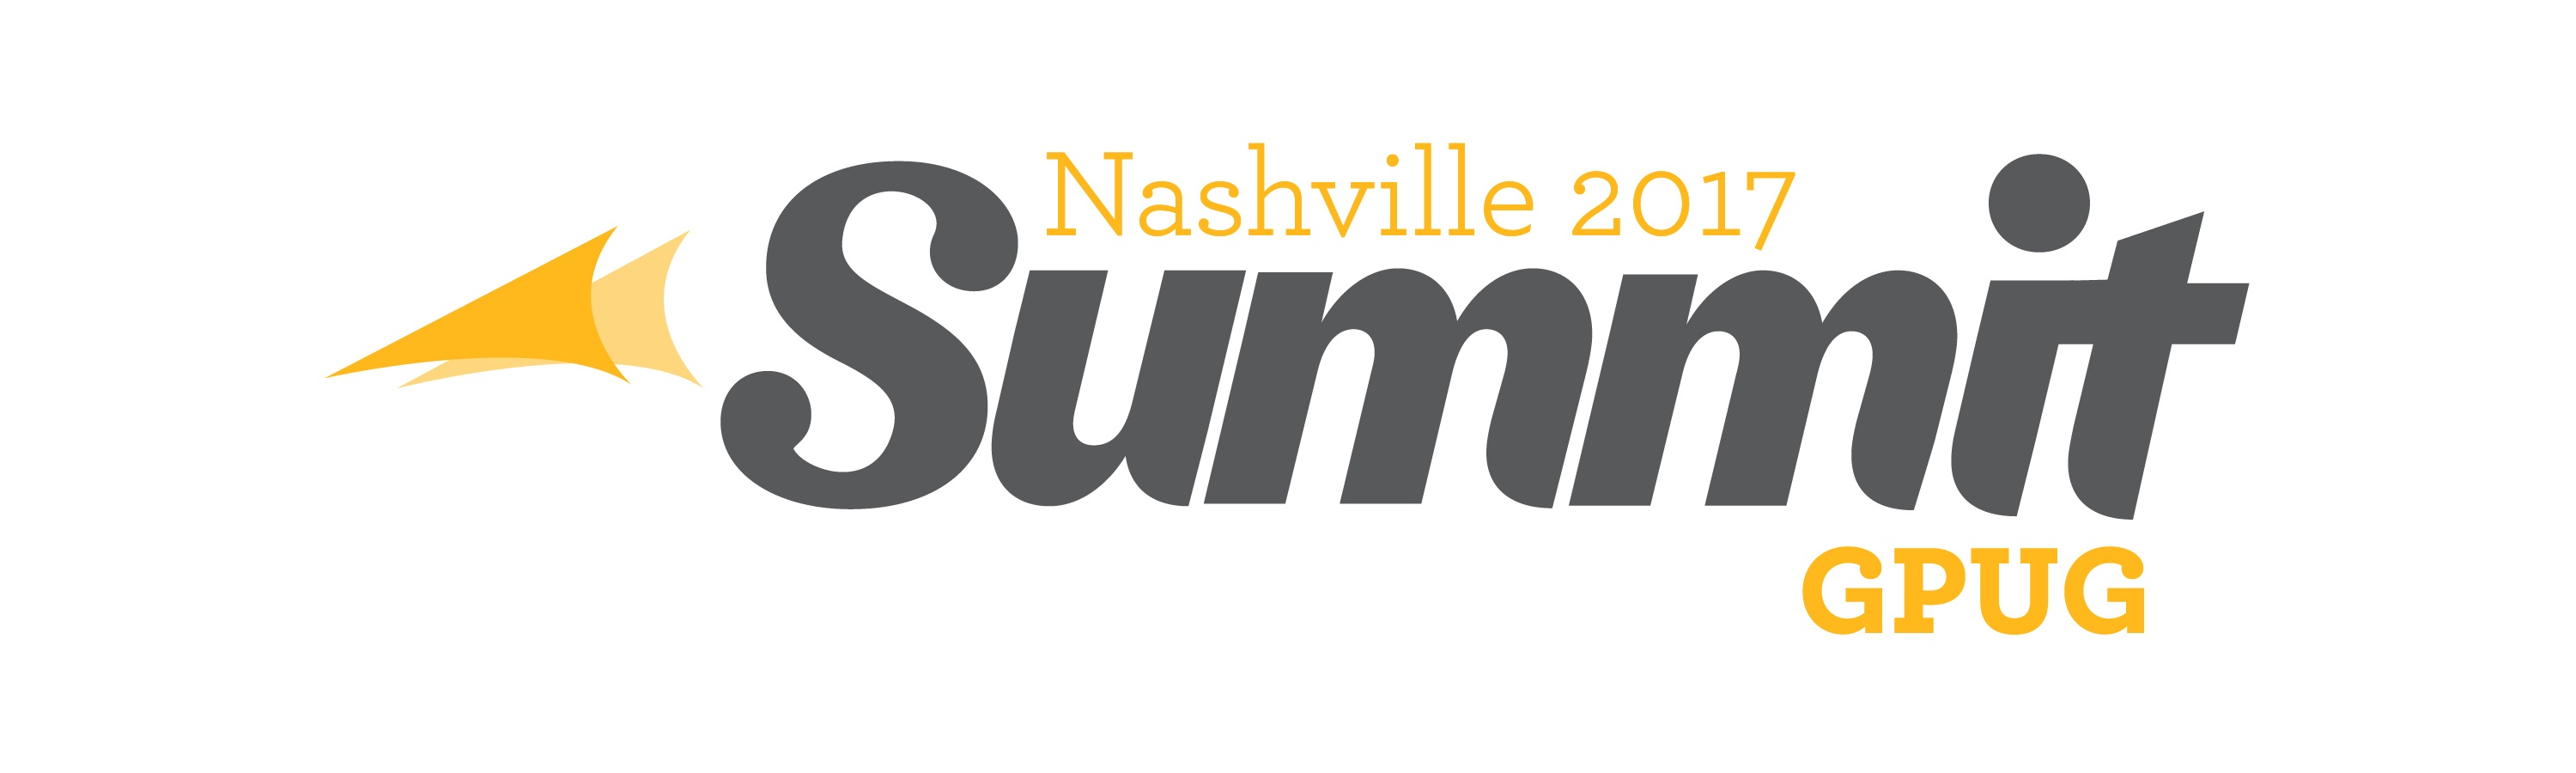 Summit Nashville - GPUG.jpg